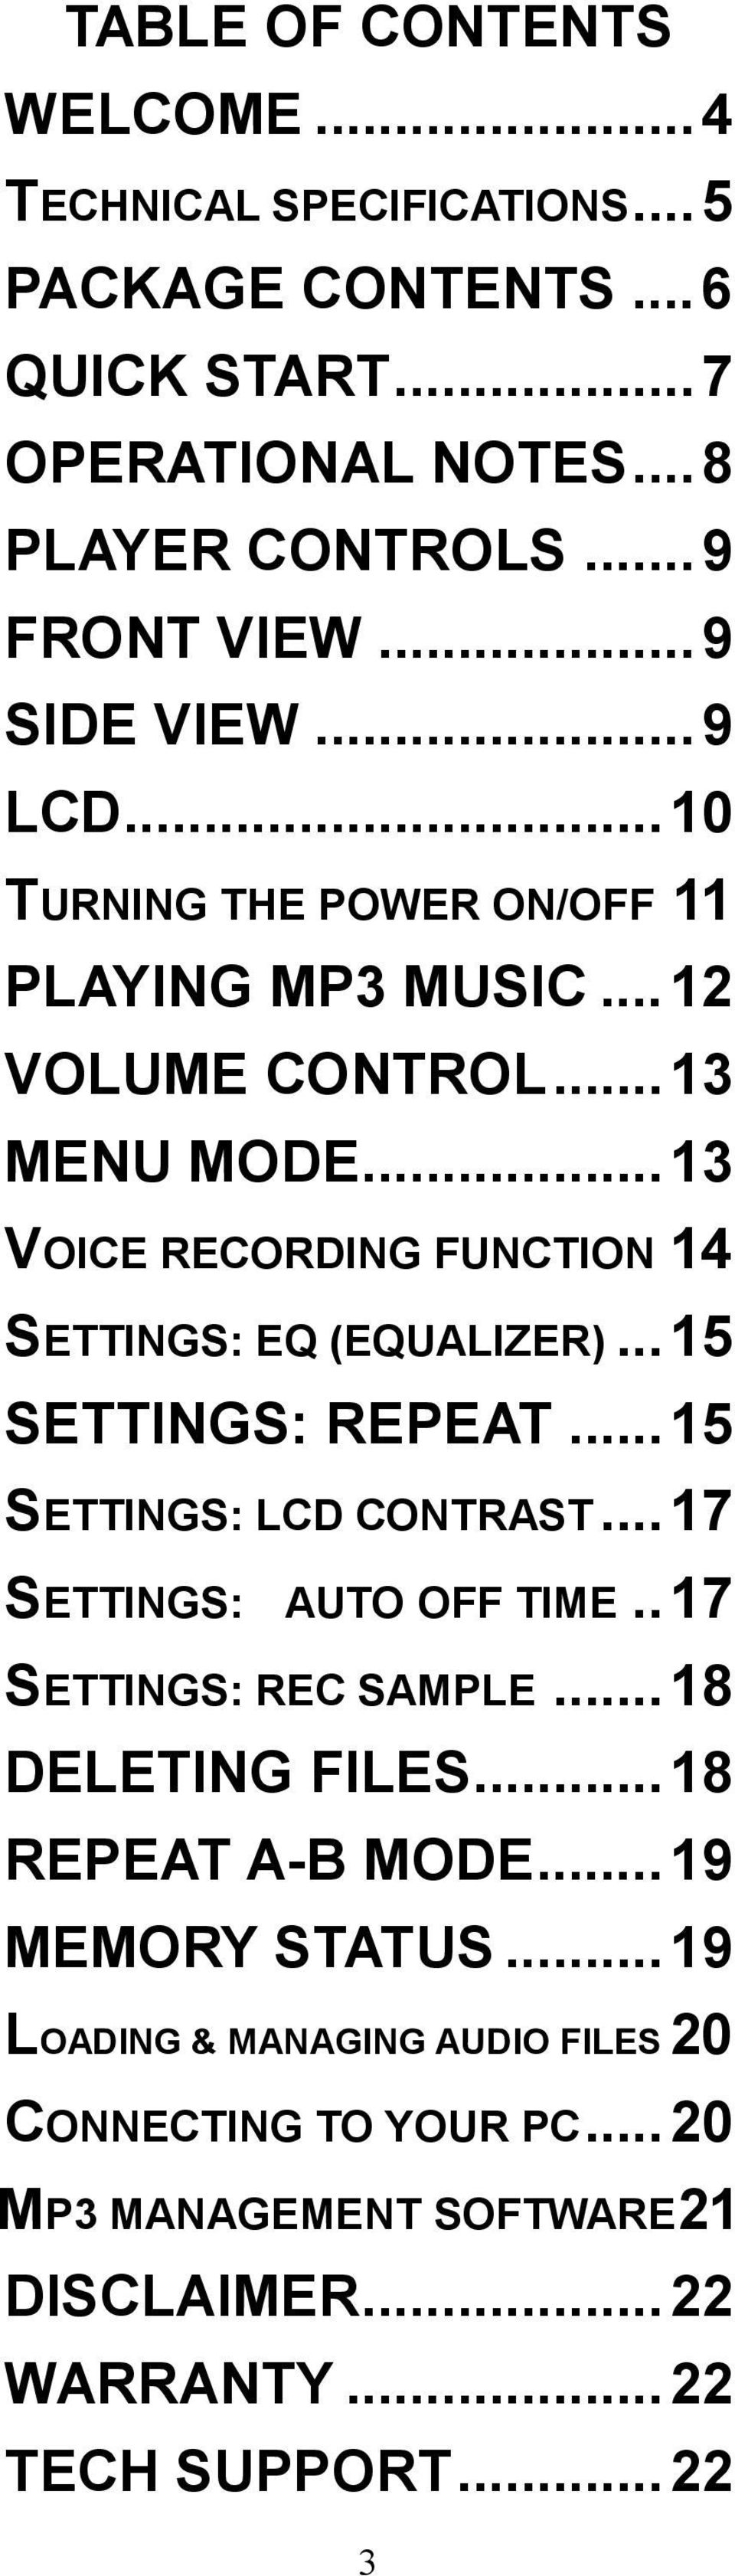 ..13 VOICE RECORDING FUNCTION 14 SETTINGS: EQ (EQUALIZER)...15 SETTINGS: REPEAT...15 SETTINGS: LCD CONTRAST...17 SETTINGS: AUTO OFF TIME.